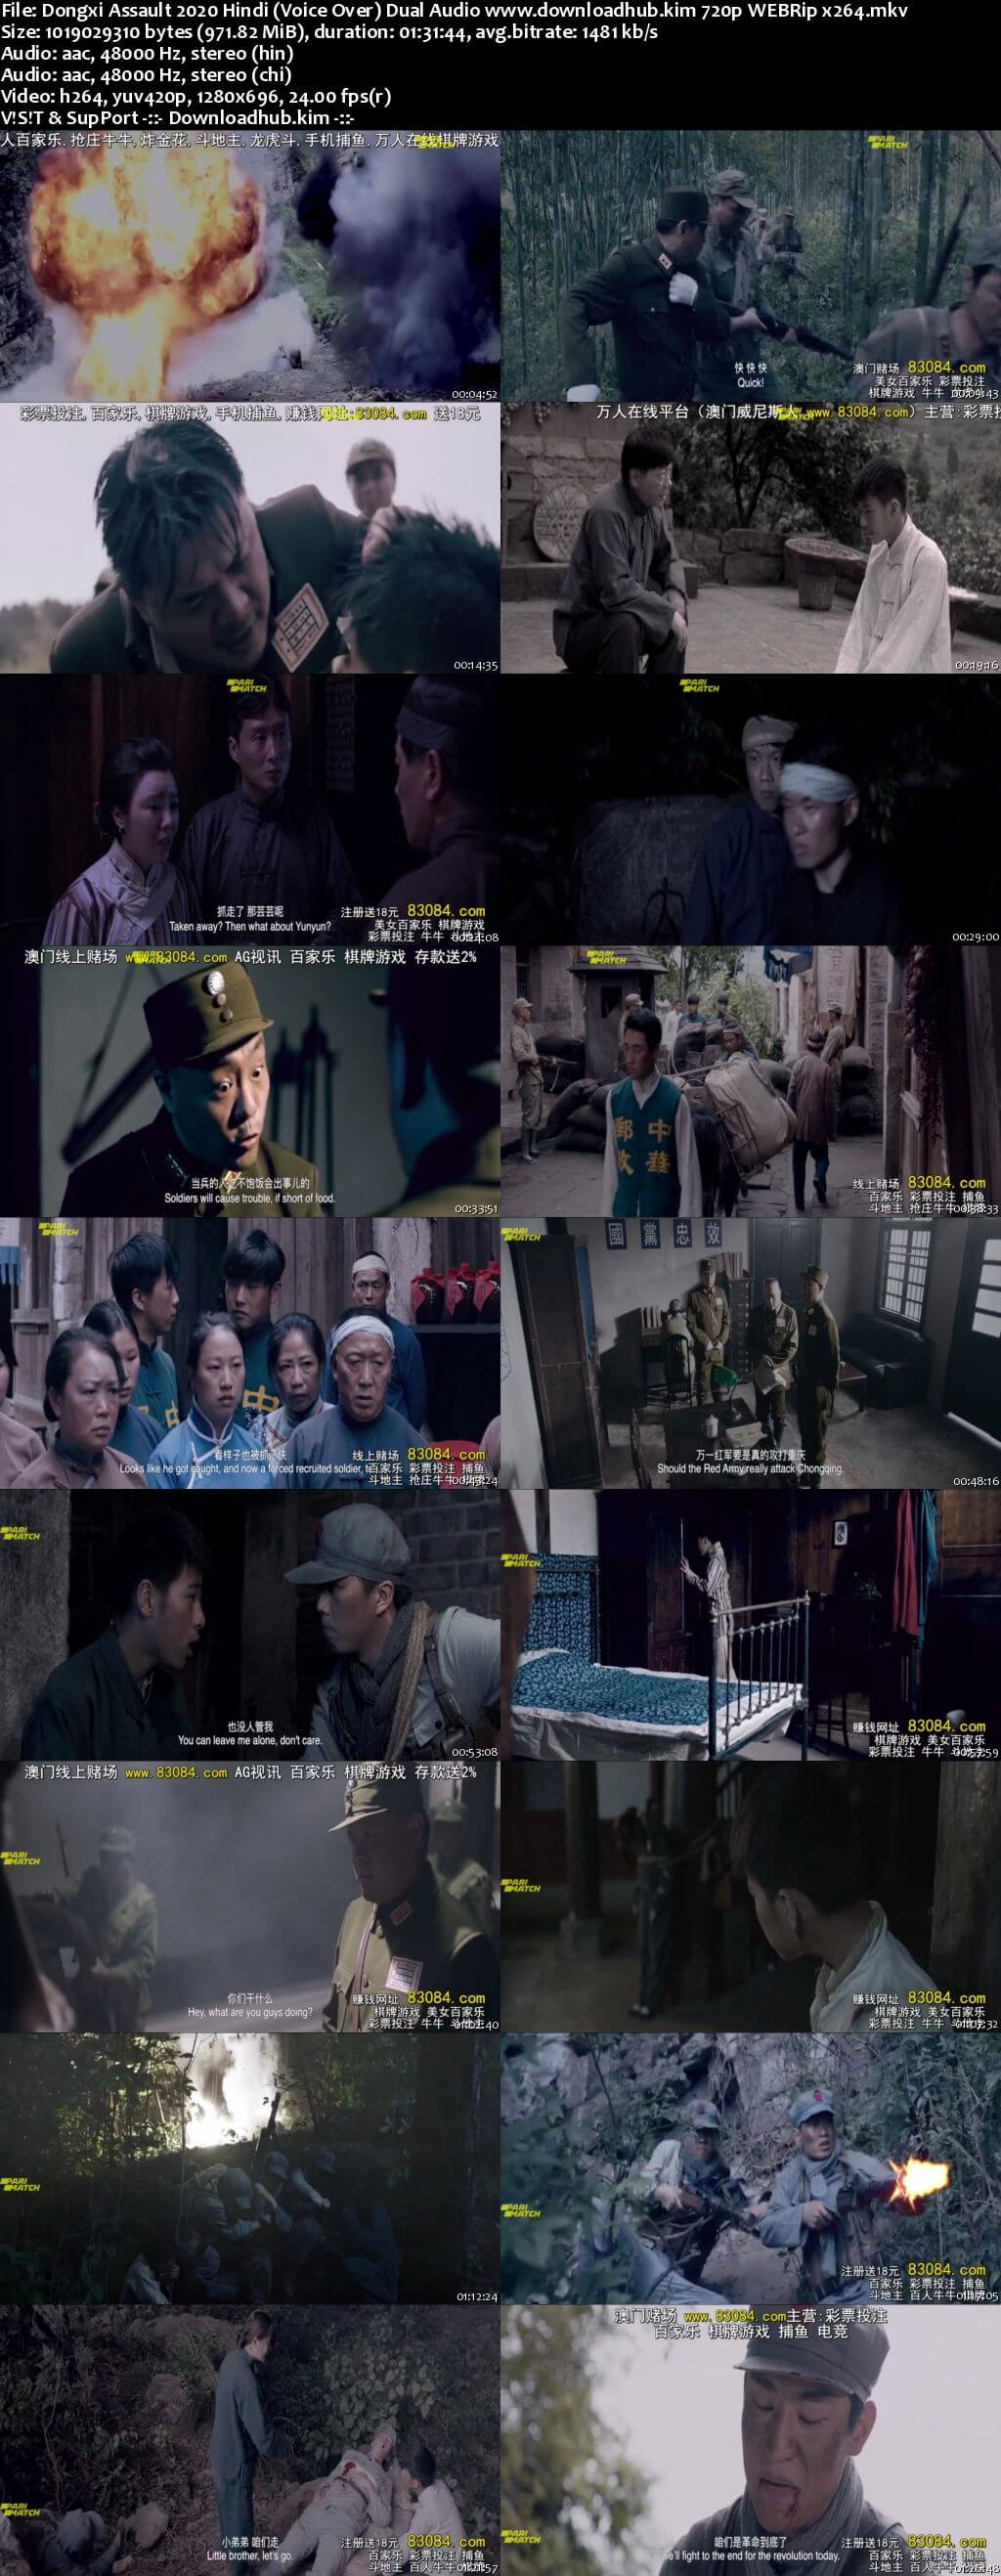 Dongxi Assault 2020 Hindi (Voice Over) Dual Audio 720p WEBRip x264